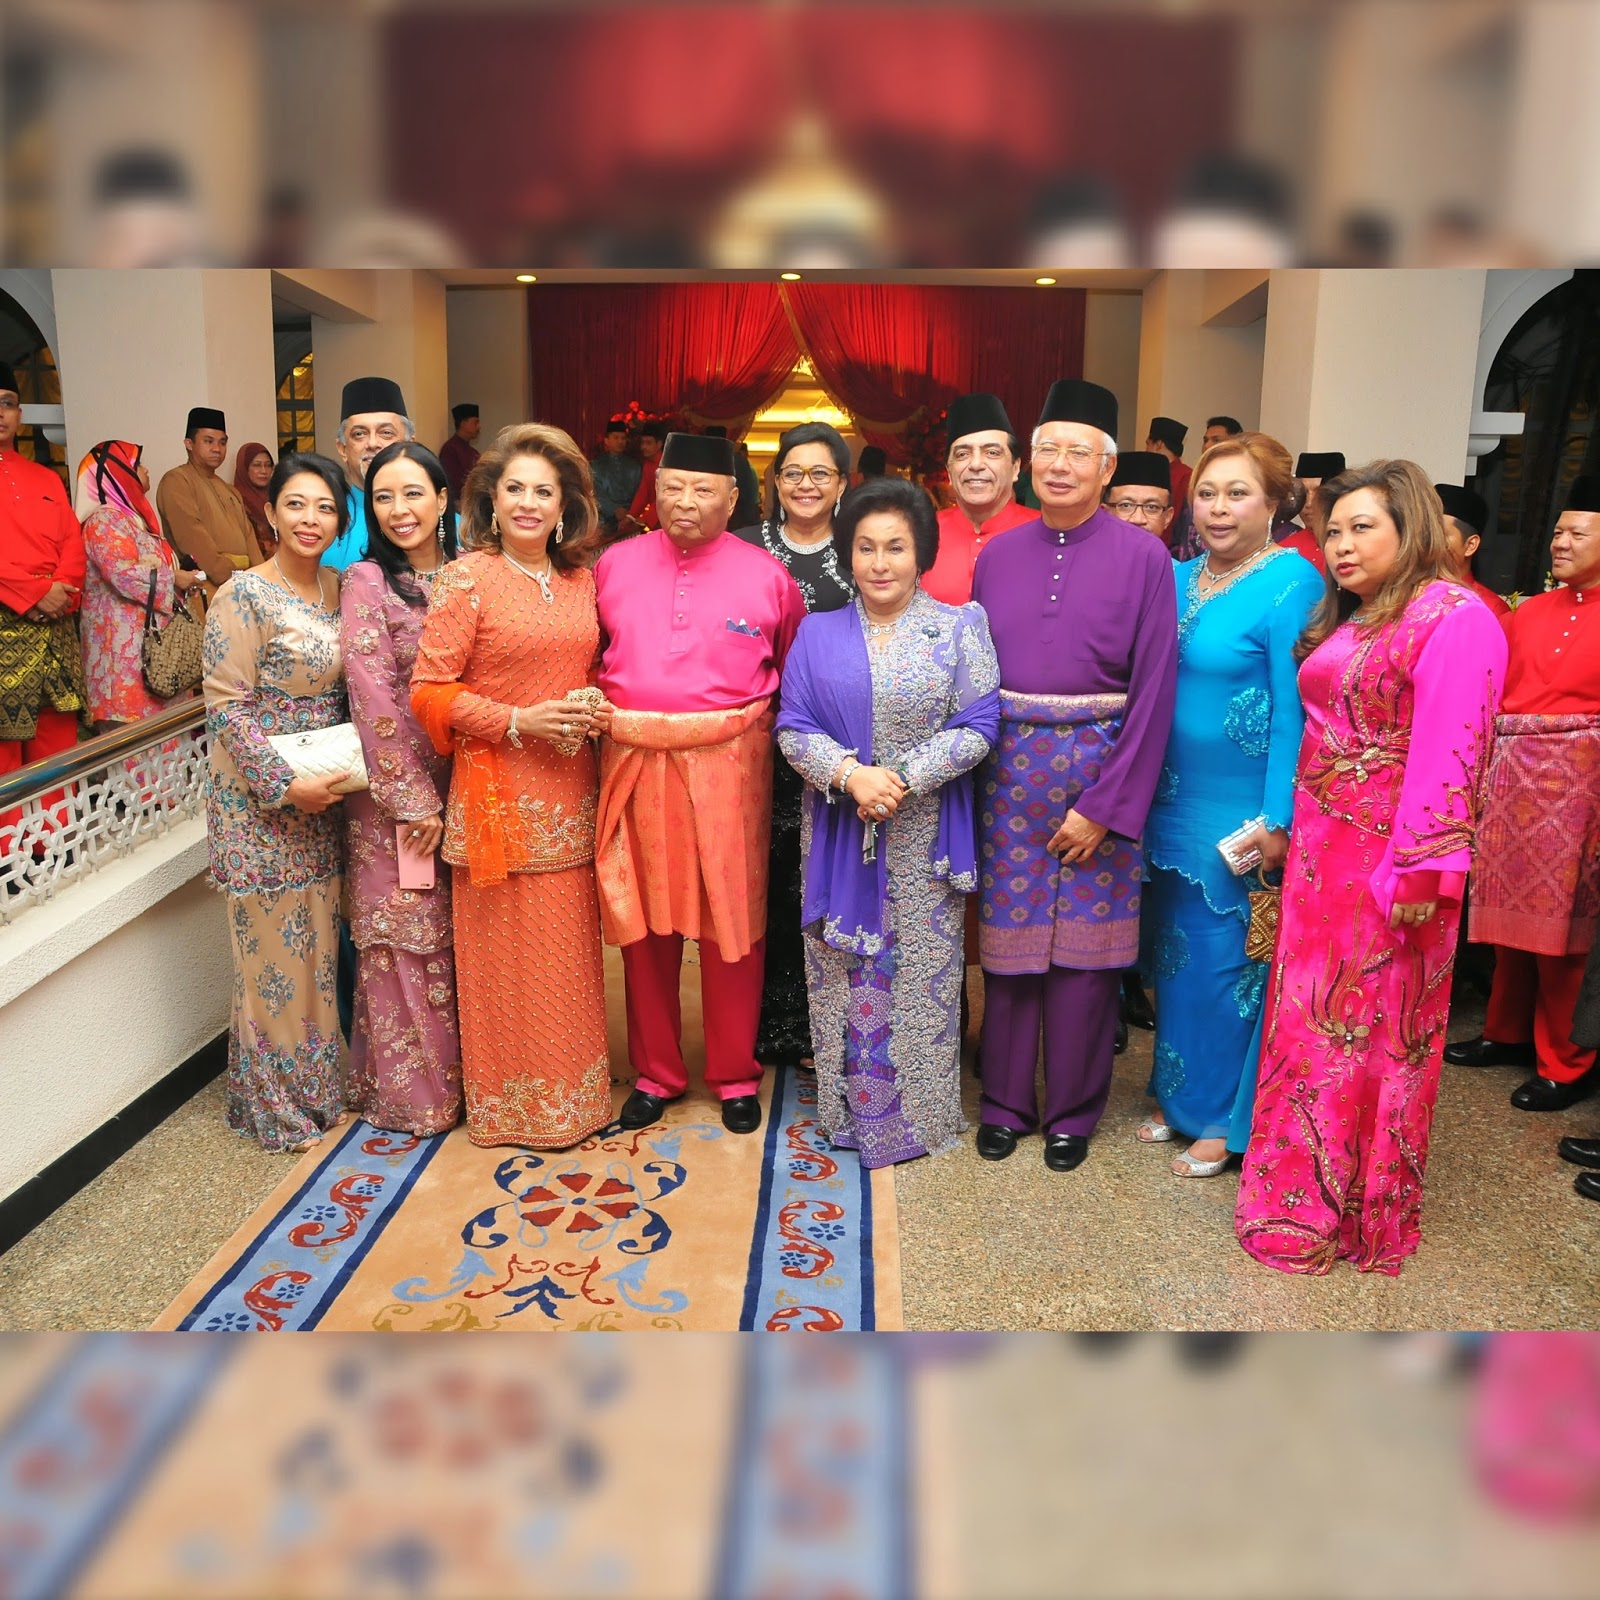 kee hua chee live his majesty the king of malaysia his